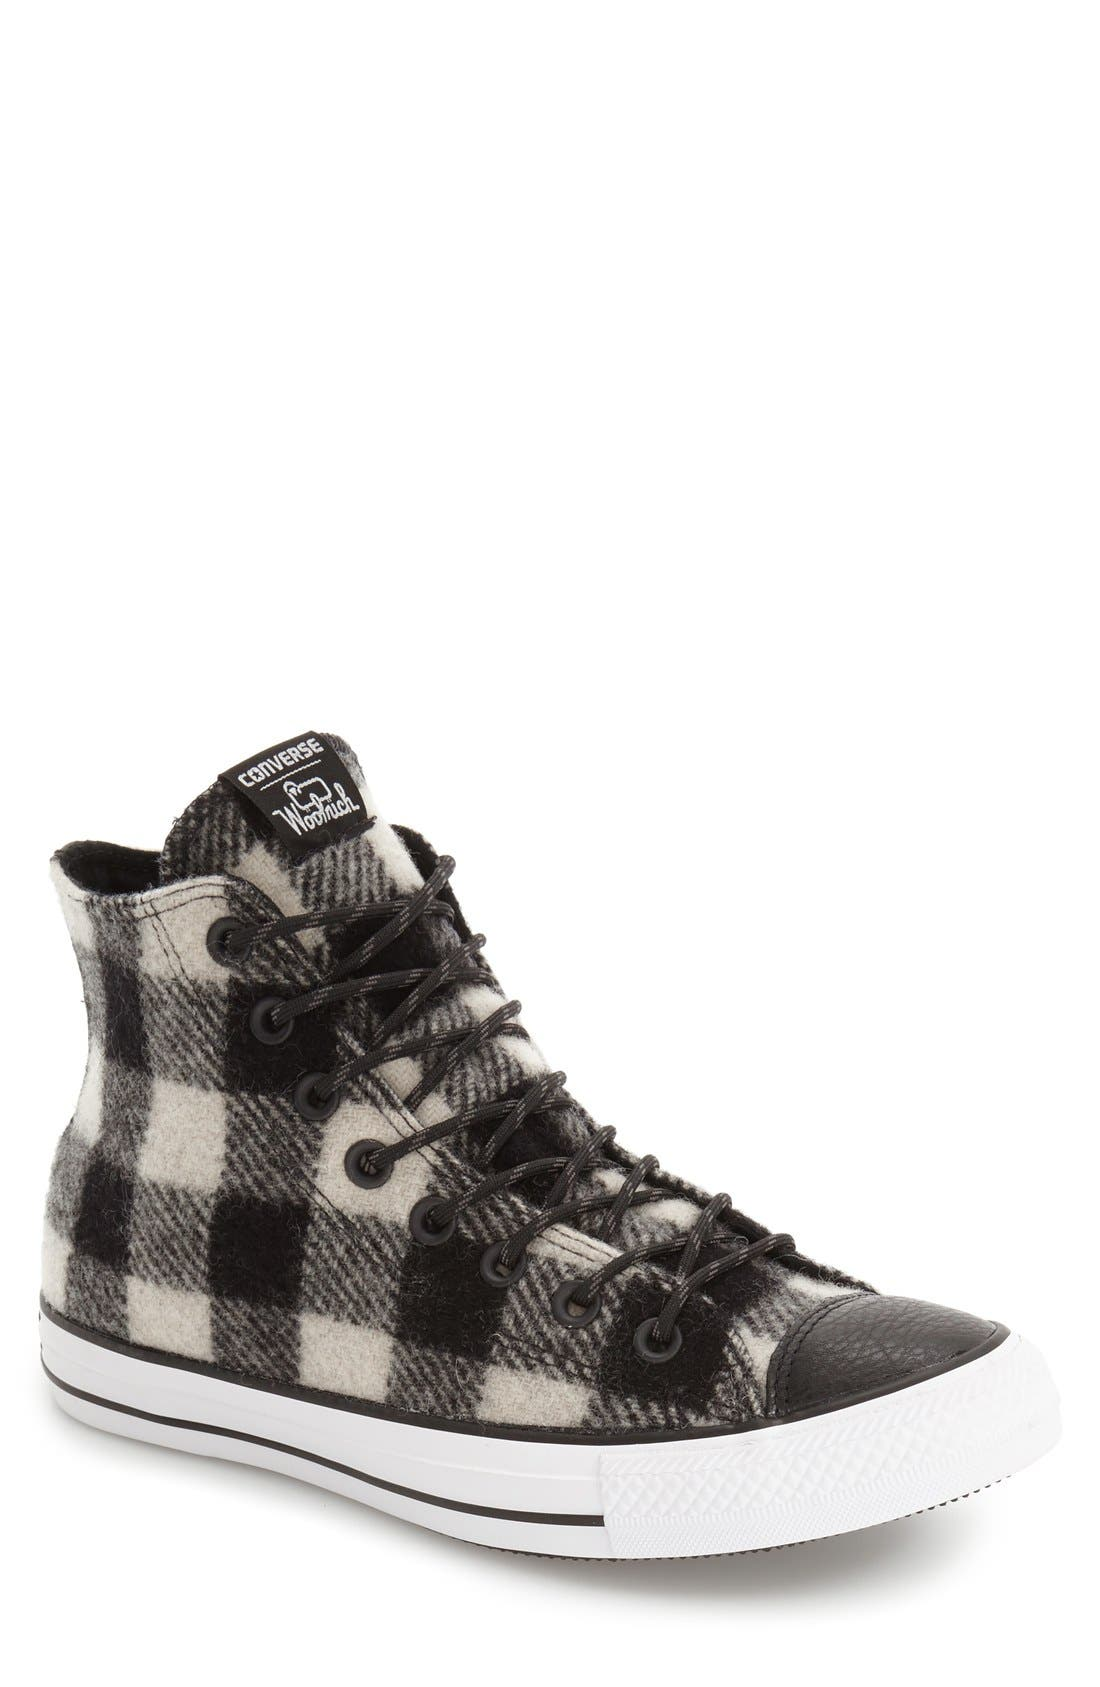 Chuck Taylor<sup>®</sup> All Star<sup>®</sup> Woolrich High Top Sneaker,                             Main thumbnail 1, color,                             001